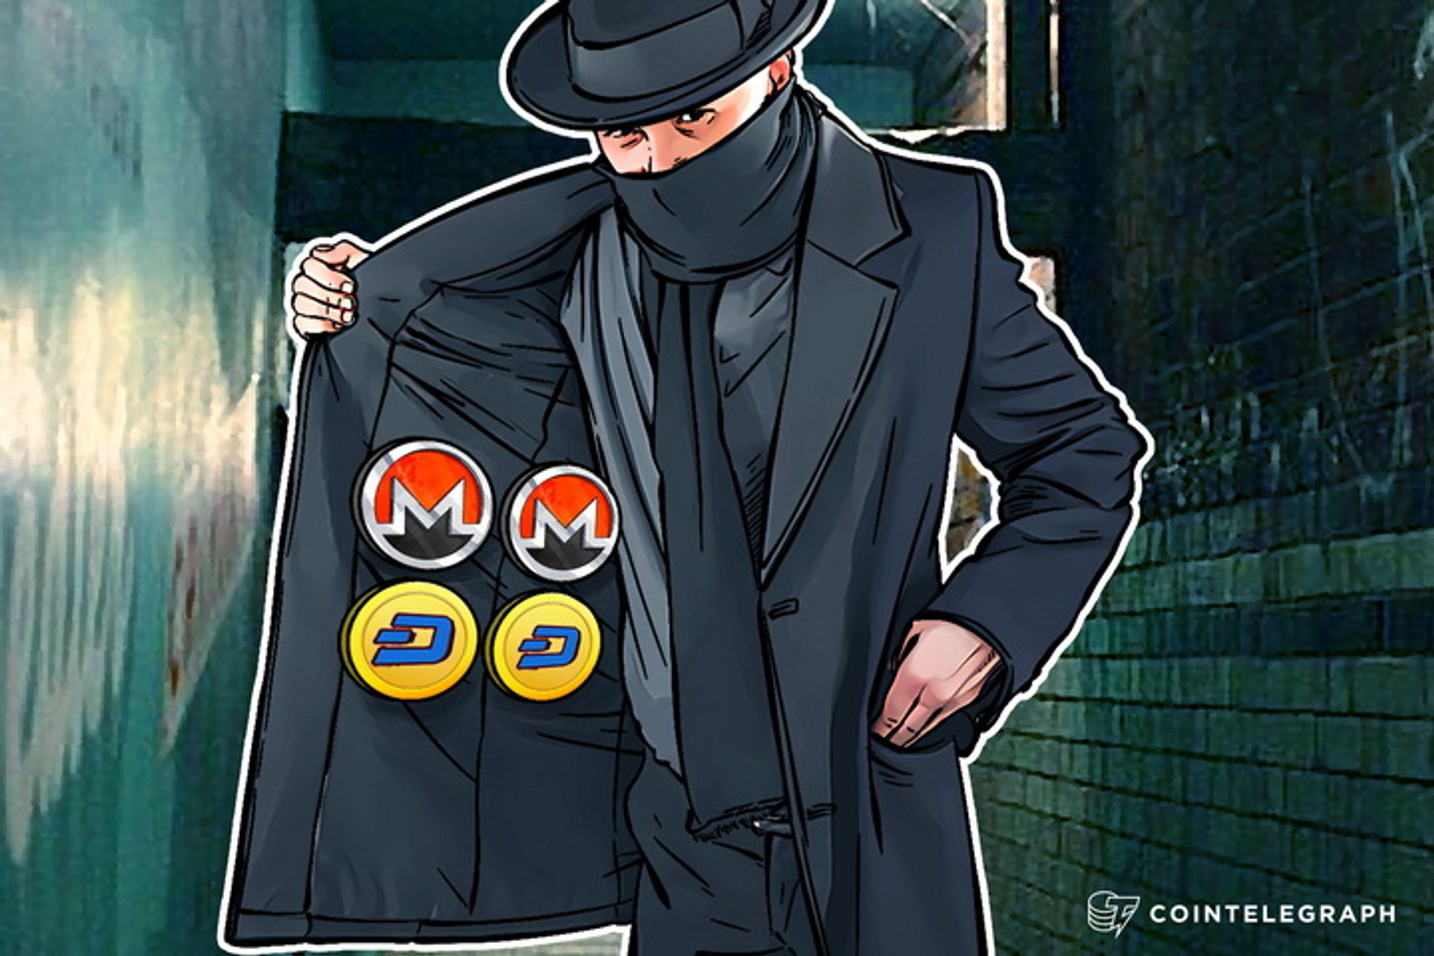 Can You Privately Buy Privacy-Focused Cryptocurrencies? Cash for Dash and Monero